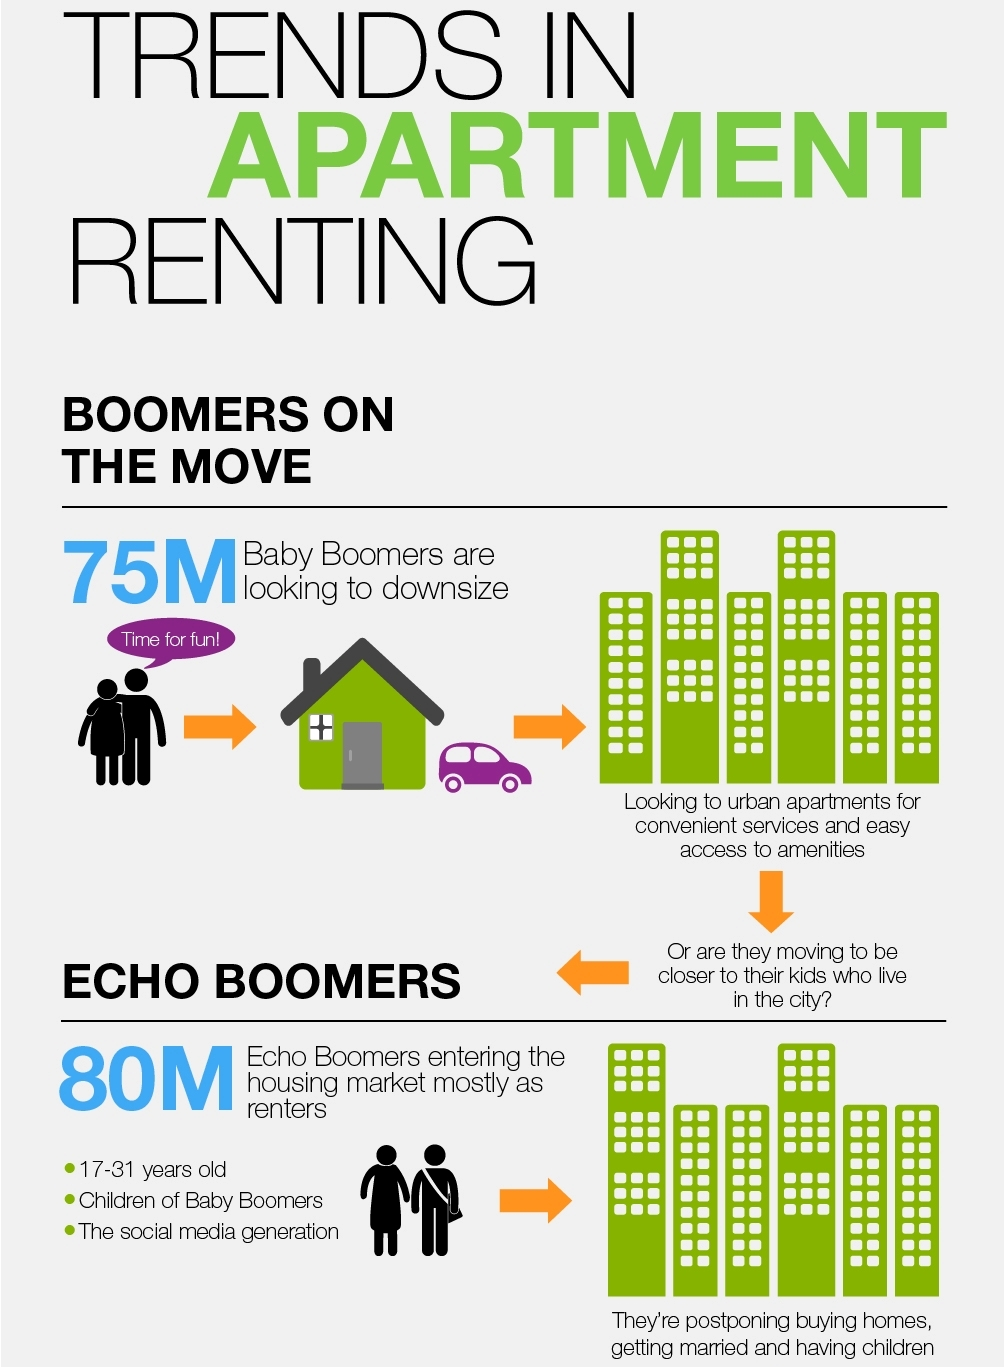 Trends in Apartment Renting (Infographic)